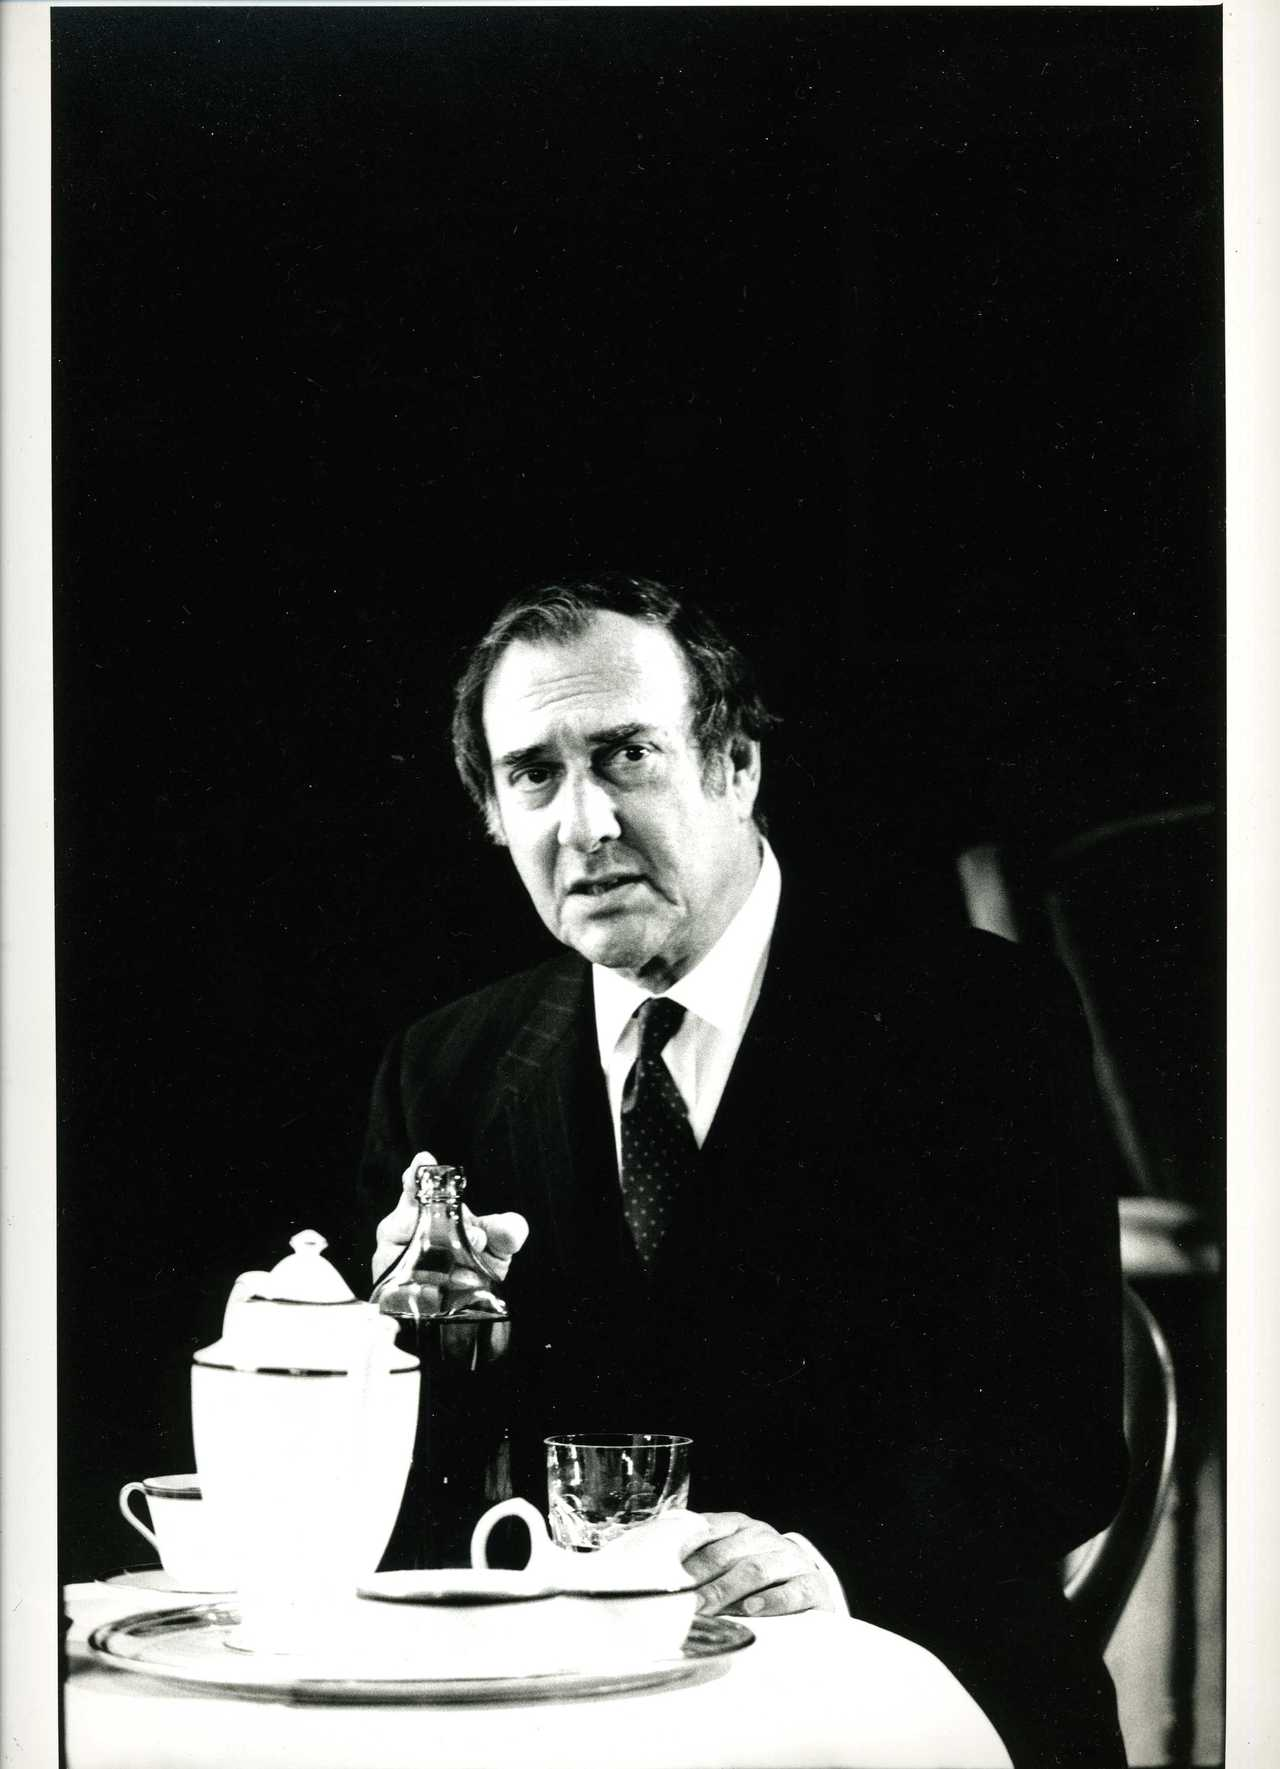 an analysis of harold pinters play betrayal Betrayal by harold pinter - summary scene i  labels: 20th century betrayal british literature drama harold pinter play summary 2 view comments essay cemetery where good college essays.